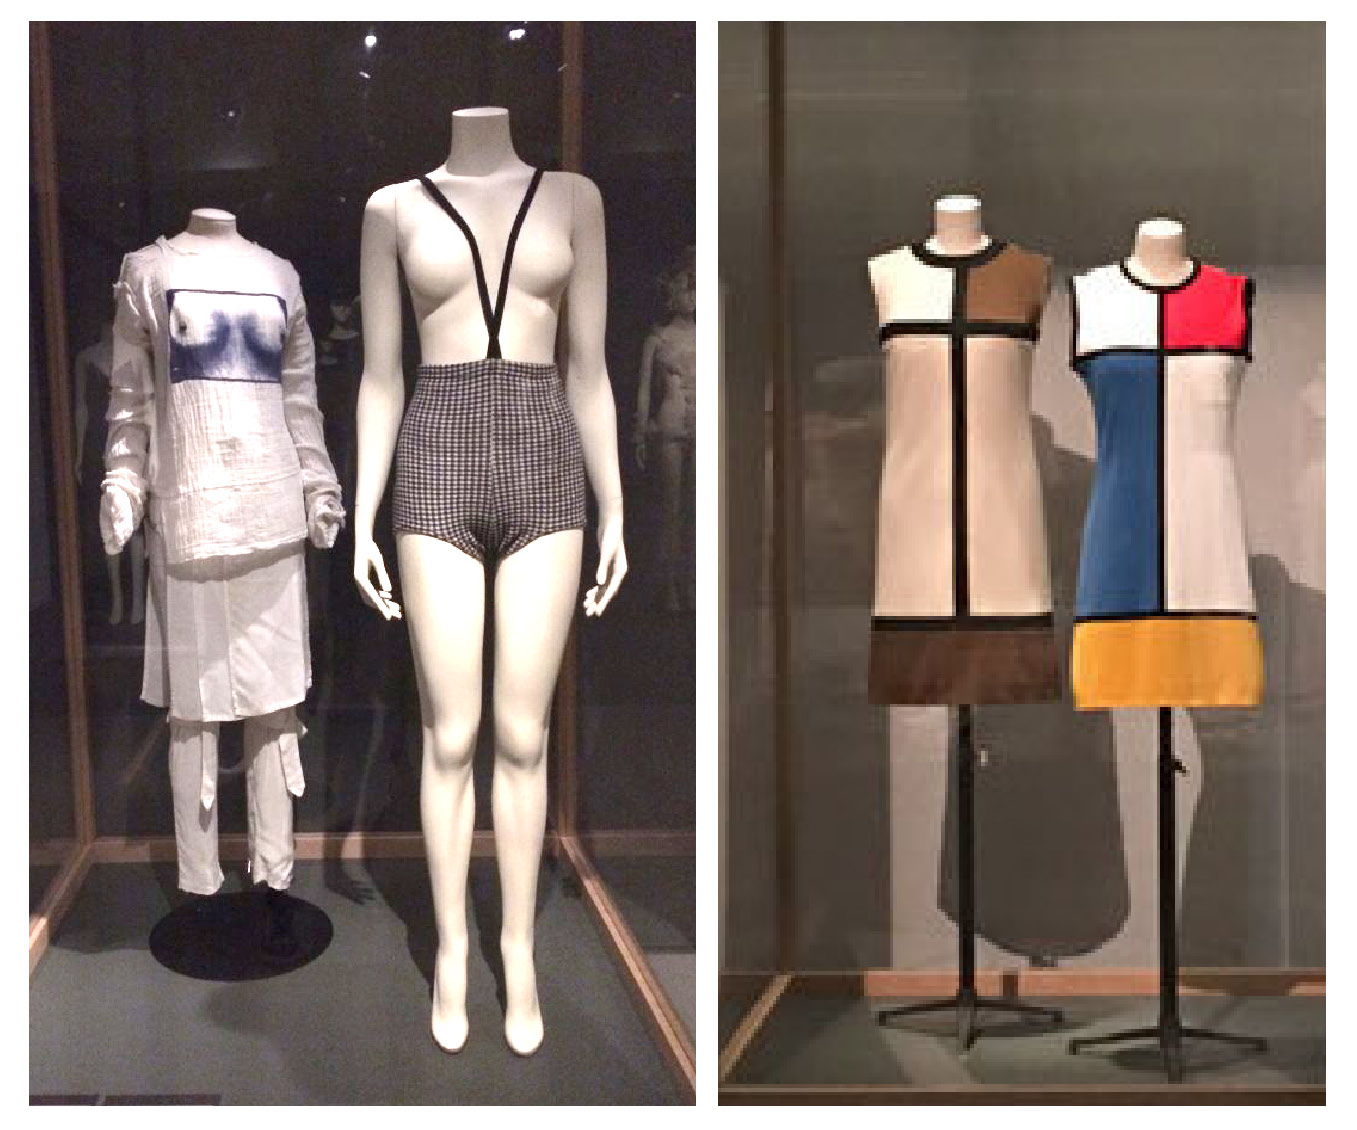 "LEFT: ""Exposed Bodies"" Designs by Vivienne Westwood and Rudi Gernreich  Image source:          96              Normal   0           false   false   false     EN-GB   X-NONE   X-NONE                                                                                                                                                                                                                                                                                                                                                                                                                                                                                                                                                                                                                                                                                                                                                                                                                                                                                     /* Style Definitions */ table.MsoNormalTable 	{mso-style-name:""Table Normal""; 	mso-tstyle-rowband-size:0; 	mso-tstyle-colband-size:0; 	mso-style-noshow:yes; 	mso-style-priority:99; 	mso-style-parent:""""; 	mso-padding-alt:0in 5.4pt 0in 5.4pt; 	mso-para-margin:0in; 	mso-para-margin-bottom:.0001pt; 	mso-pagination:widow-orphan; 	font-size:12.0pt; 	font-family:Calibri; 	mso-ascii-font-family:Calibri; 	mso-ascii-theme-font:minor-latin; 	mso-hansi-font-family:Calibri; 	mso-hansi-theme-font:minor-latin; 	mso-fareast-language:EN-US;}     www.smudgetikka.com RIGHT: ""Classic Copies"" Yves Saint Laurent dresses inspired by Mondrian Image source:          96              Normal   0           false   false   false     EN-GB   X-NONE   X-NONE                                                                                                                                                                                                                                                                                                                                                                                                                                                                                                                                                                                                                                                                                                                                                                                                                                                                                     /* Style Definitions */ table.MsoNormalTable 	{mso-style-name:""Table Normal""; 	mso-tstyle-rowband-size:0; 	mso-tstyle-colband-size:0; 	mso-style-noshow:yes; 	mso-style-priority:99; 	mso-style-parent:""""; 	mso-padding-alt:0in 5.4pt 0in 5.4pt; 	mso-para-margin:0in; 	mso-para-margin-bottom:.0001pt; 	mso-pagination:widow-orphan; 	font-size:12.0pt; 	font-family:Calibri; 	mso-ascii-font-family:Calibri; 	mso-ascii-theme-font:minor-latin; 	mso-hansi-font-family:Calibri; 	mso-hansi-theme-font:minor-latin; 	mso-fareast-language:EN-US;}     www.michaelbarnaartvanbergen.com          96              Normal   0           false   false   false     EN-GB   X-NONE   X-NONE                                                                                                                                                                                                                                                                                                                                                                                                                                                                                                                                                                                                                                                                                                                                                                                                                                                                                     /* Style Definitions */ table.MsoNormalTable 	{mso-style-name:""Table Normal""; 	mso-tstyle-rowband-size:0; 	mso-tstyle-colband-size:0; 	mso-style-noshow:yes; 	mso-style-priority:99; 	mso-style-parent:""""; 	mso-padding-alt:0in 5.4pt 0in 5.4pt; 	mso-para-margin:0in; 	mso-para-margin-bottom:.0001pt; 	mso-pagination:widow-orphan; 	font-size:12.0pt; 	font-family:Calibri; 	mso-ascii-font-family:Calibri; 	mso-ascii-theme-font:minor-latin; 	mso-hansi-font-family:Calibri; 	mso-hansi-theme-font:minor-latin; 	mso-fareast-language:EN-US;}"